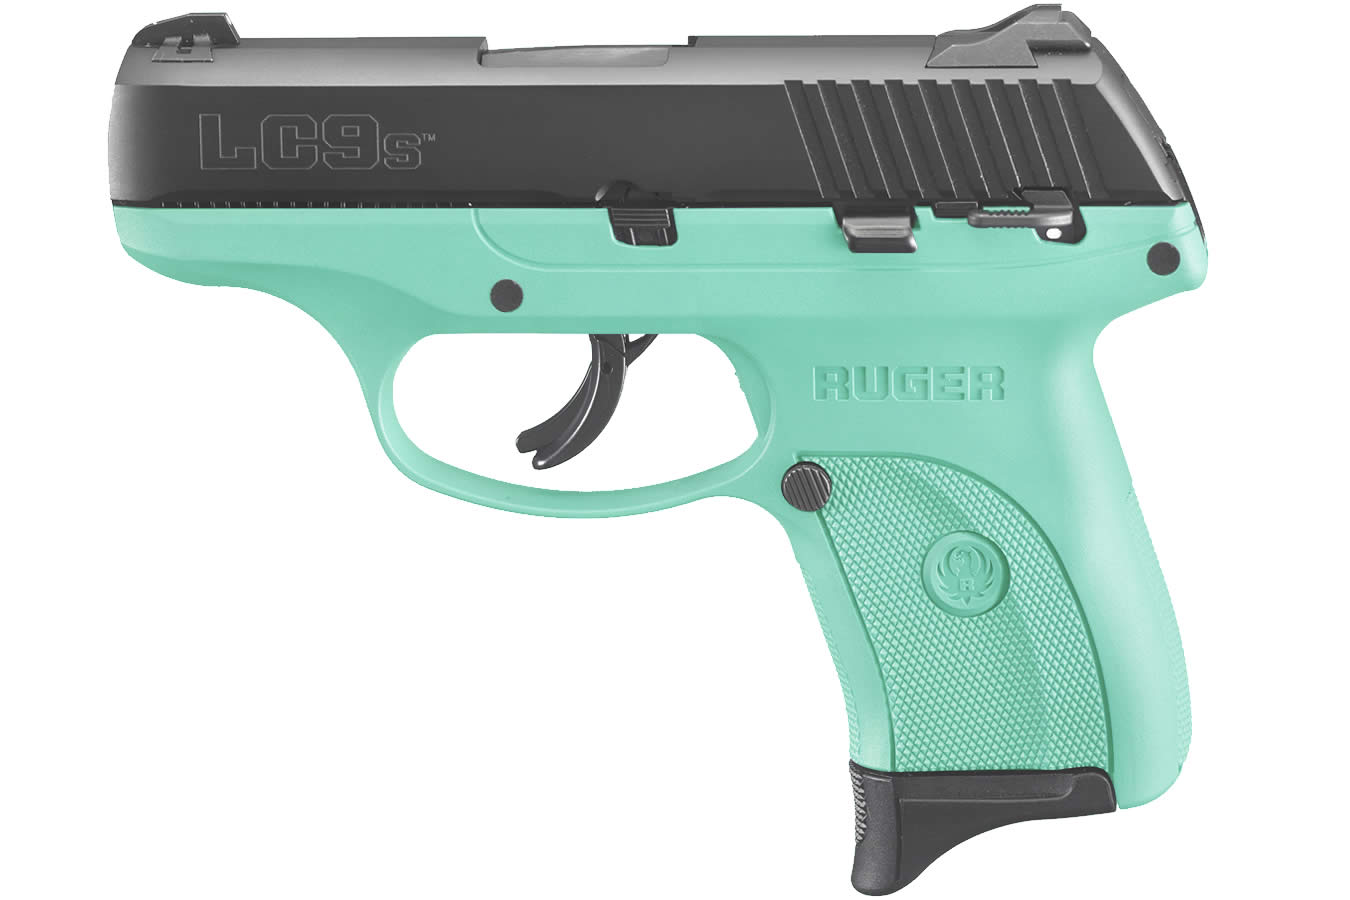 Ruger Lc9s 9mm Centerfire Pistol With